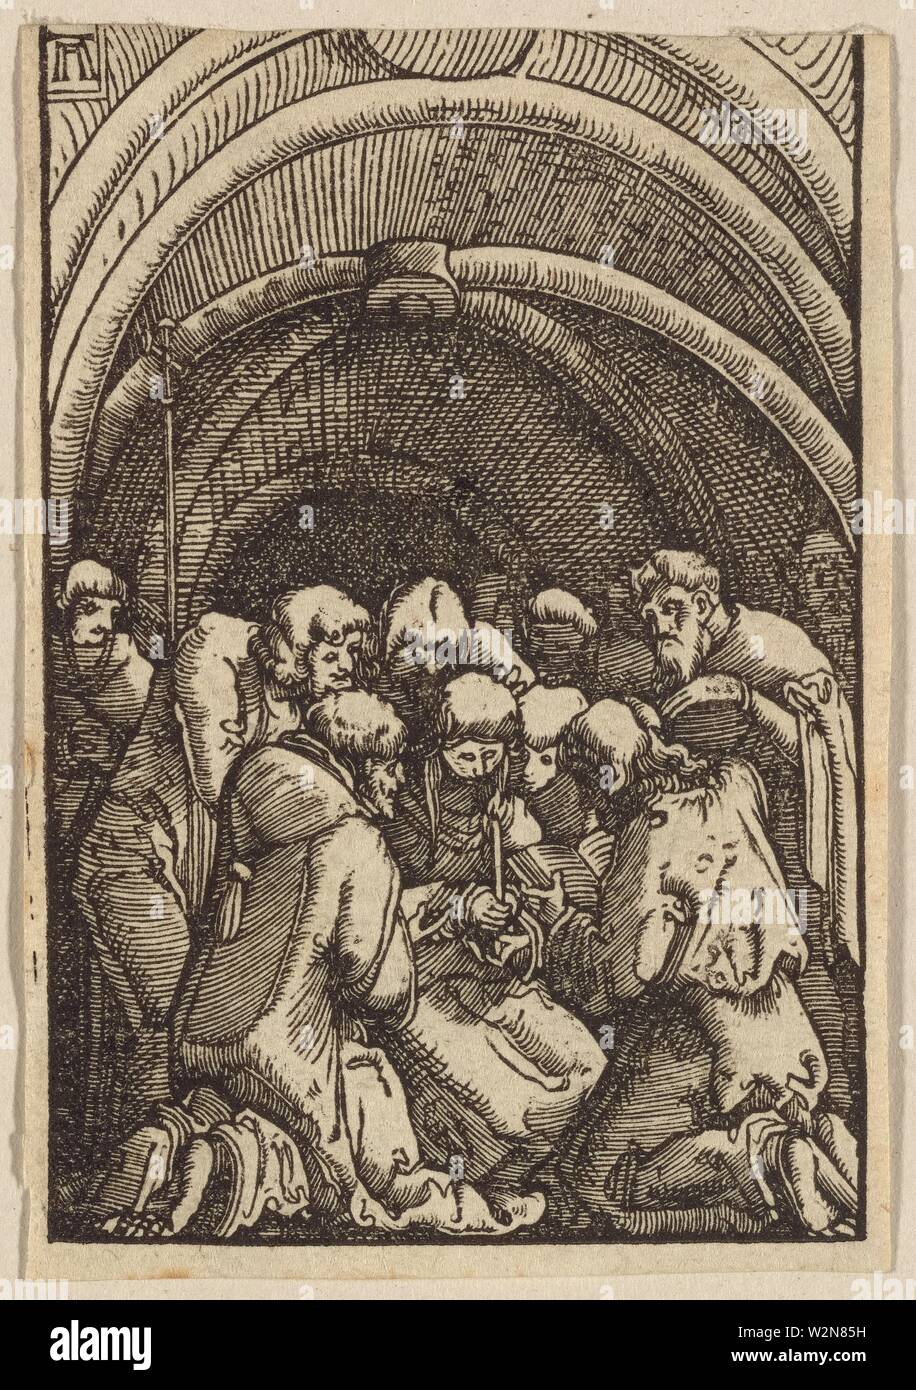 Death of the Virgin. Altdorfer, Albrecht, approximately 1480-1538 (Printmaker). German master prints The Fall and Redemption of Man. Date Created: - Stock Image